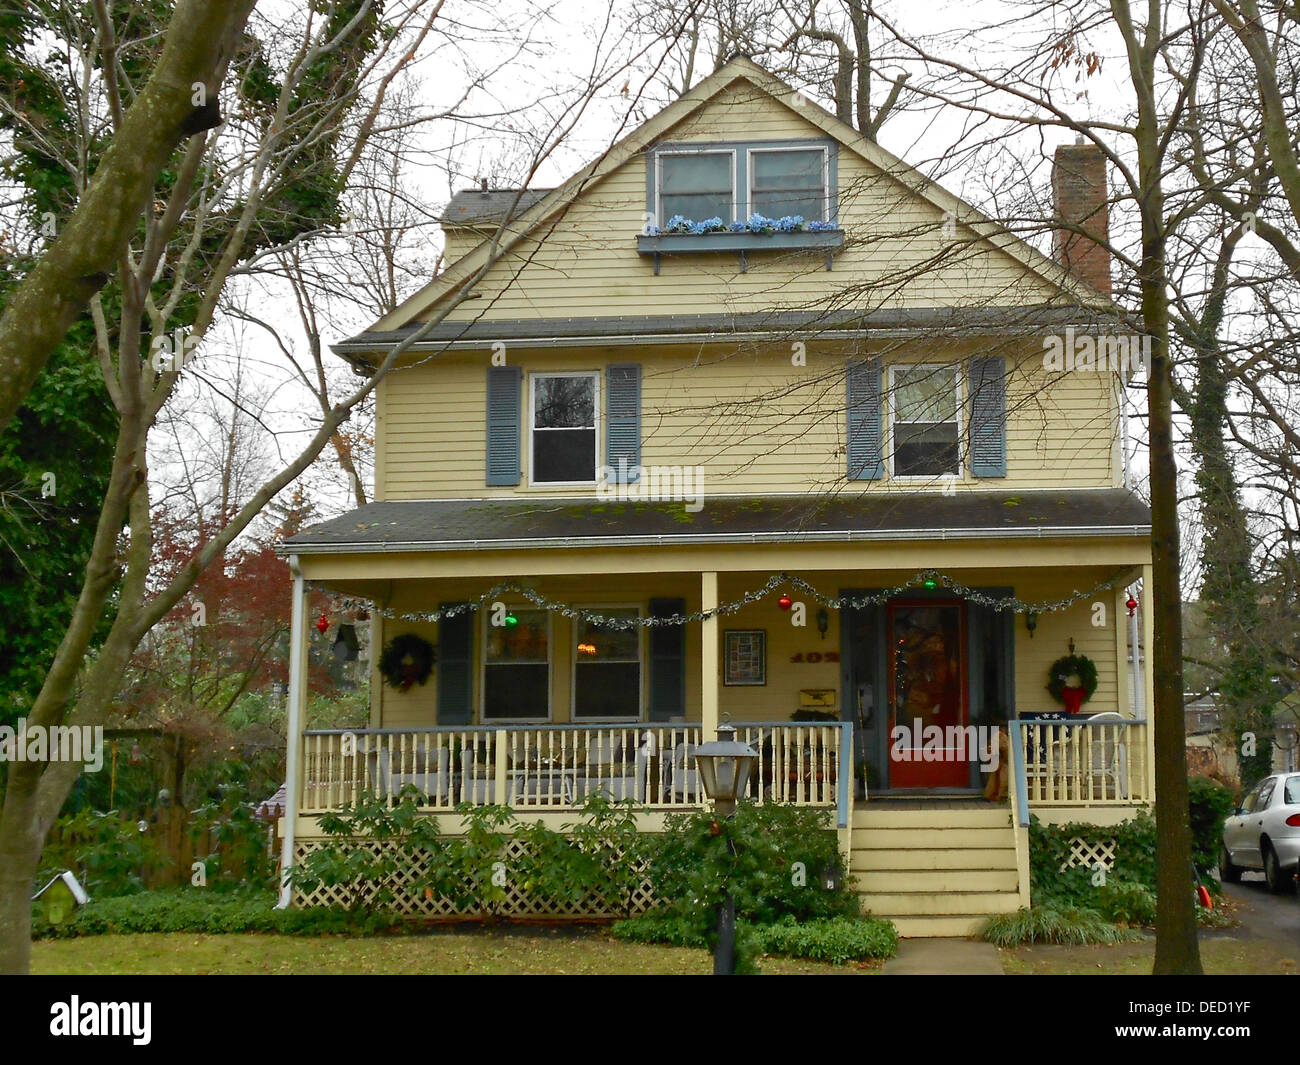 House in the North Wayne Historic District in Wayne, Pennsylvania on the Main Line in suburban Philadelphia. The Stock Photo